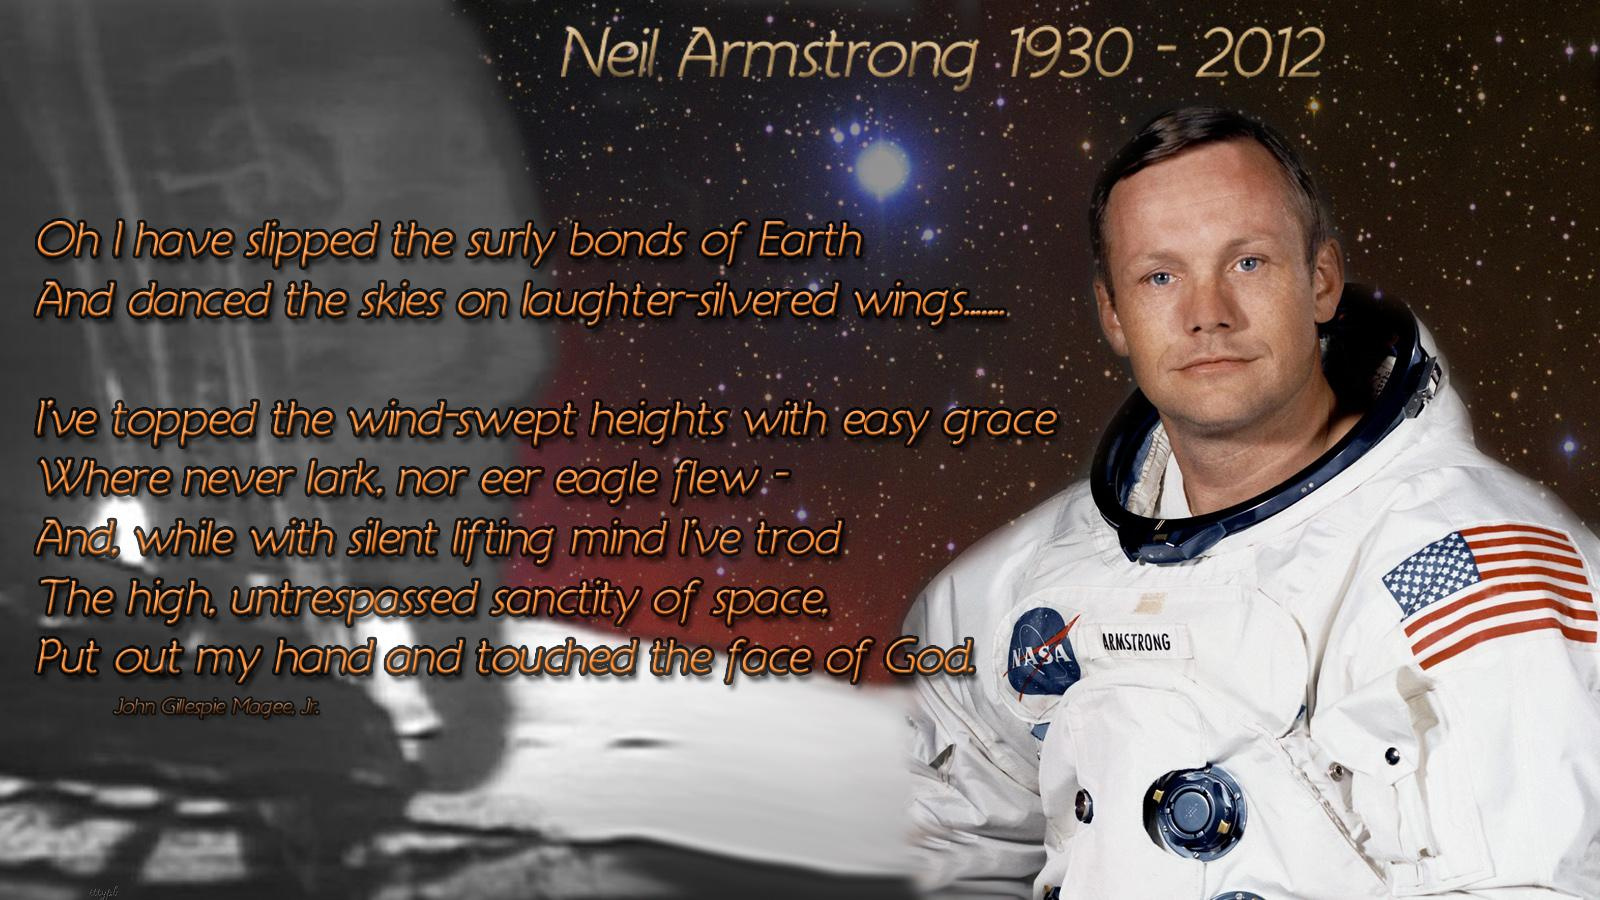 neil armstrong name animated - photo #31